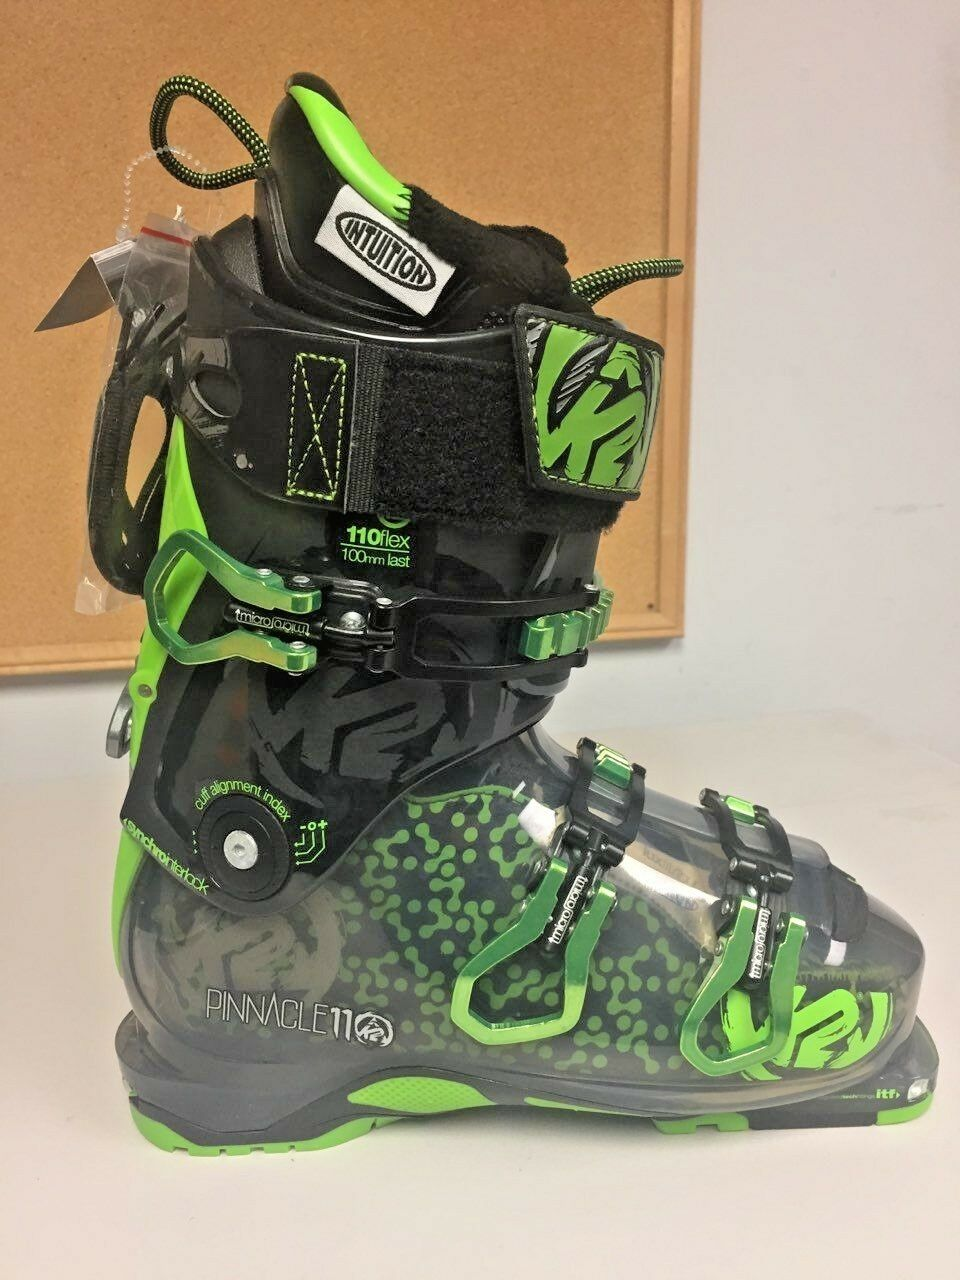 NEW K2 Pinnacle 110 Flex Ski Boots Size 25.5